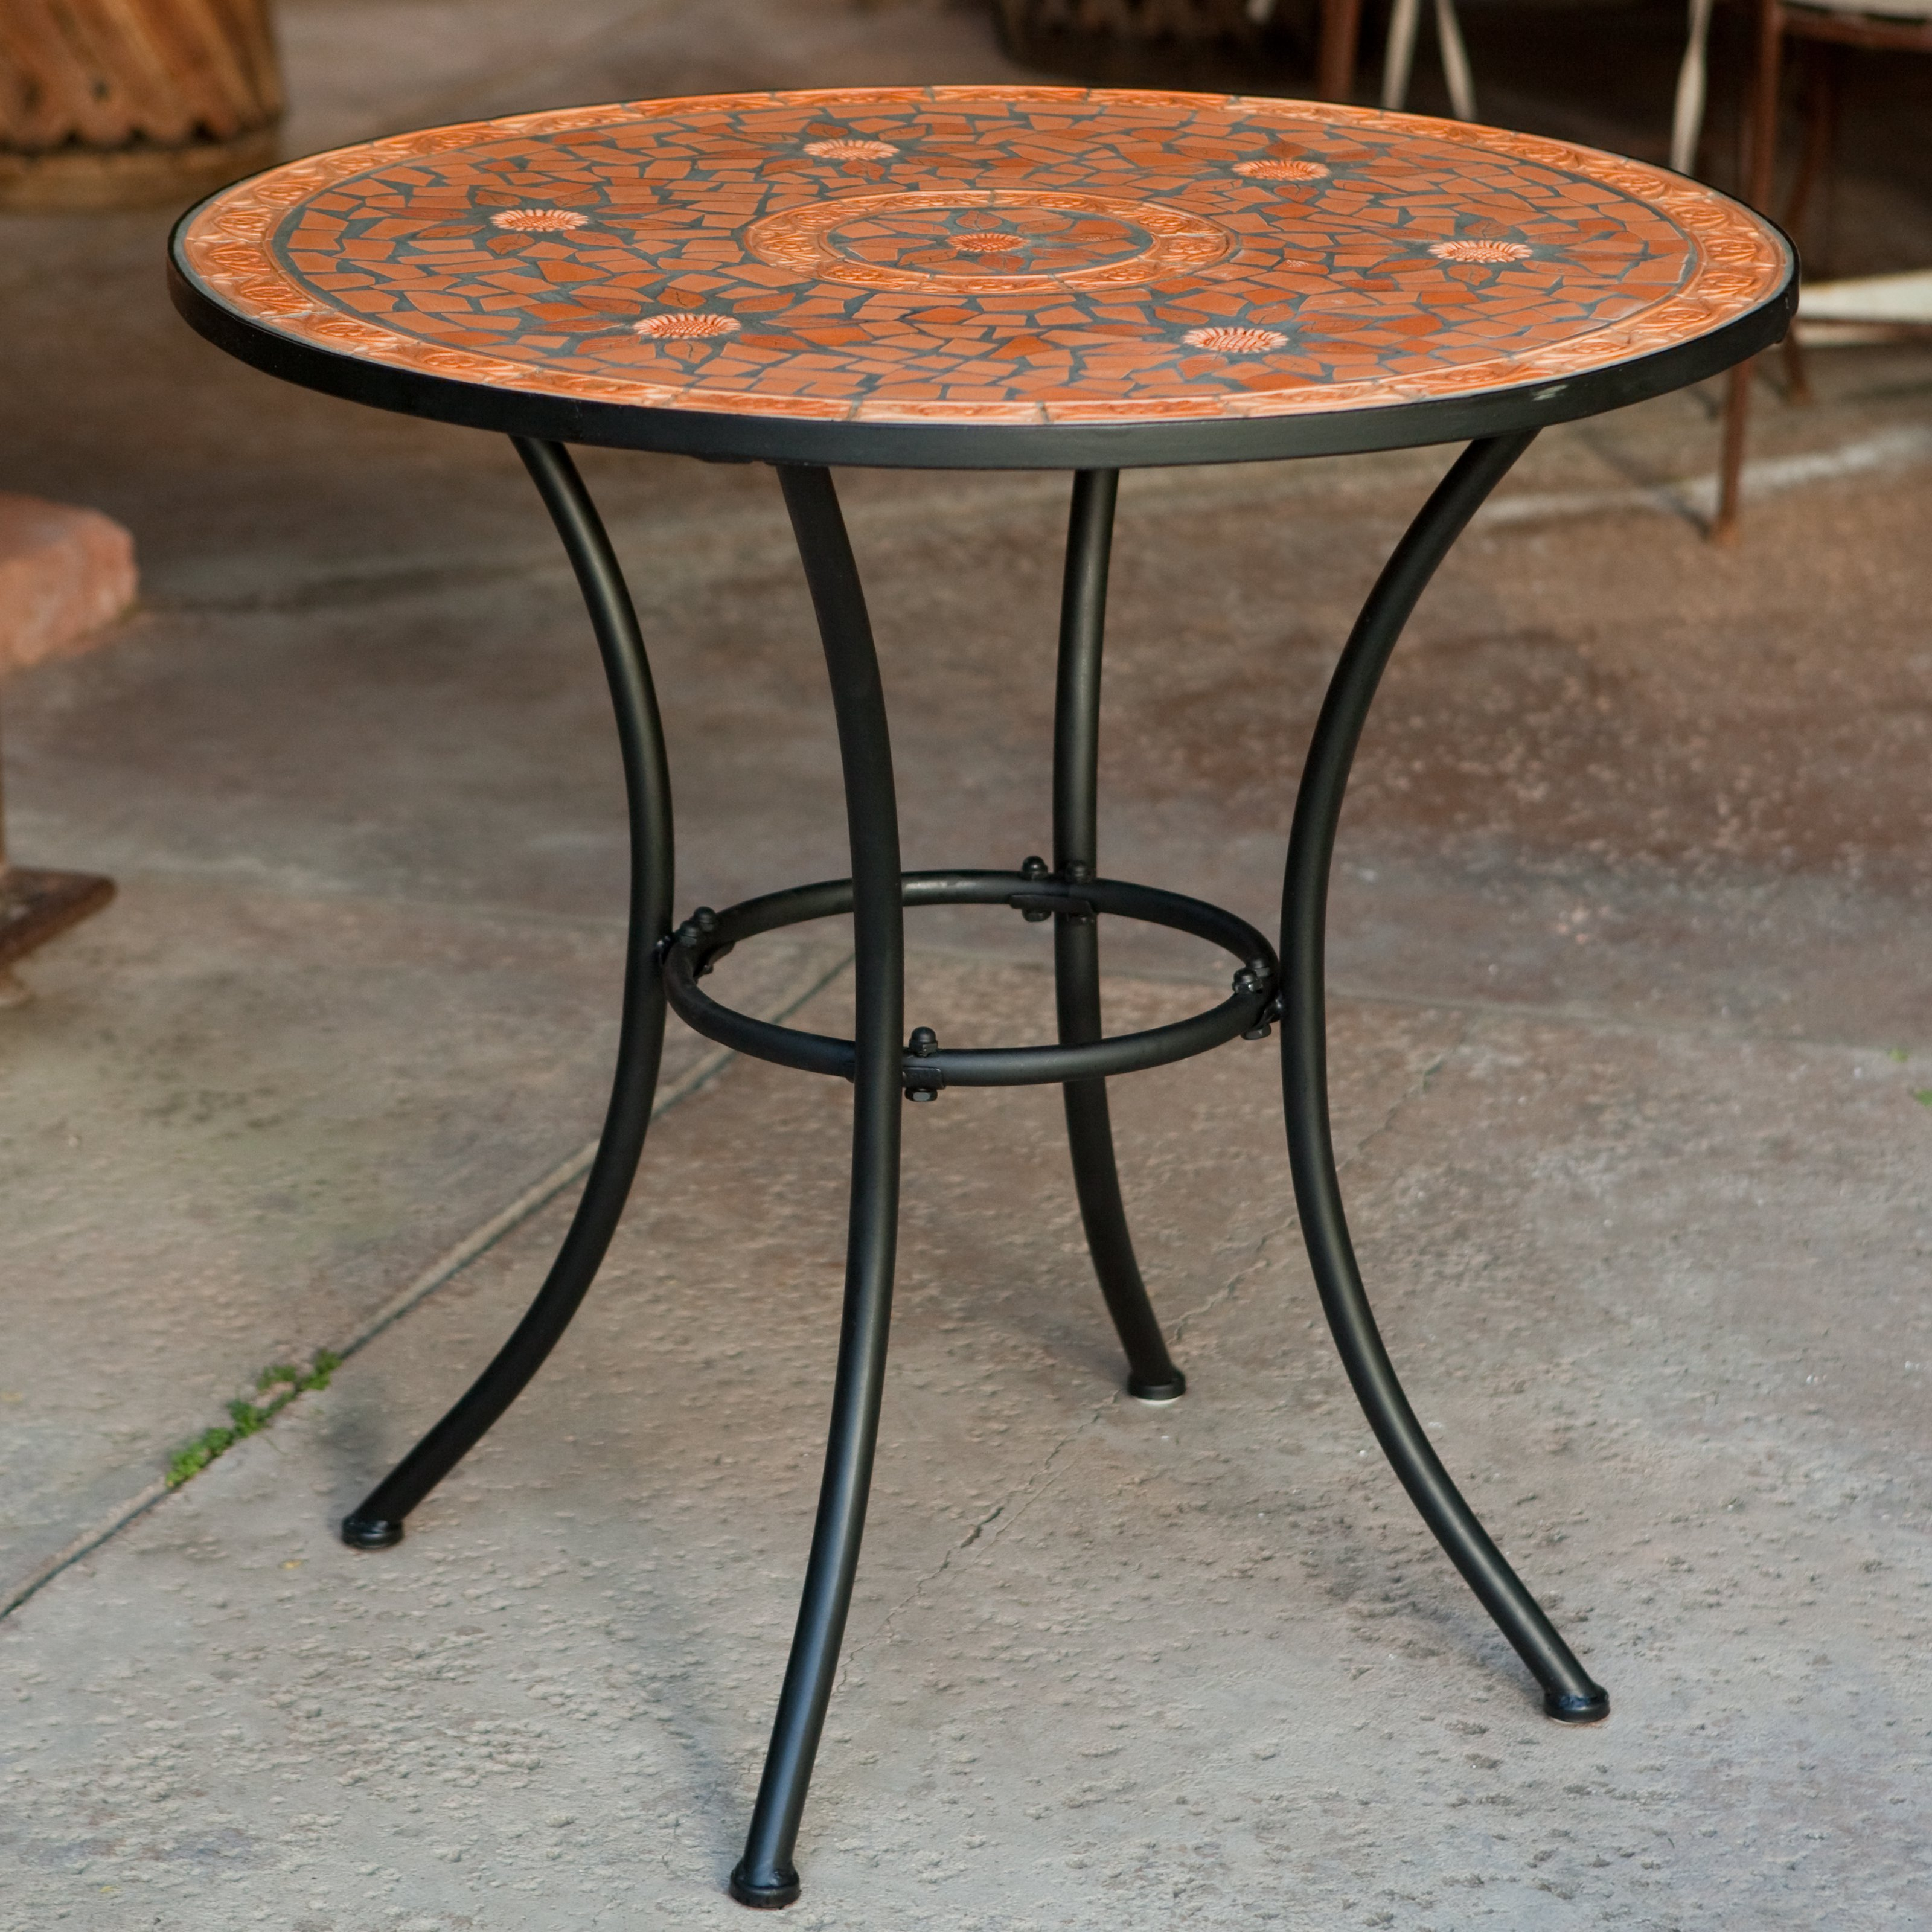 small outdoor table Coral Coast terracotta mosaic bistro table    Hay needle TUMJQGM